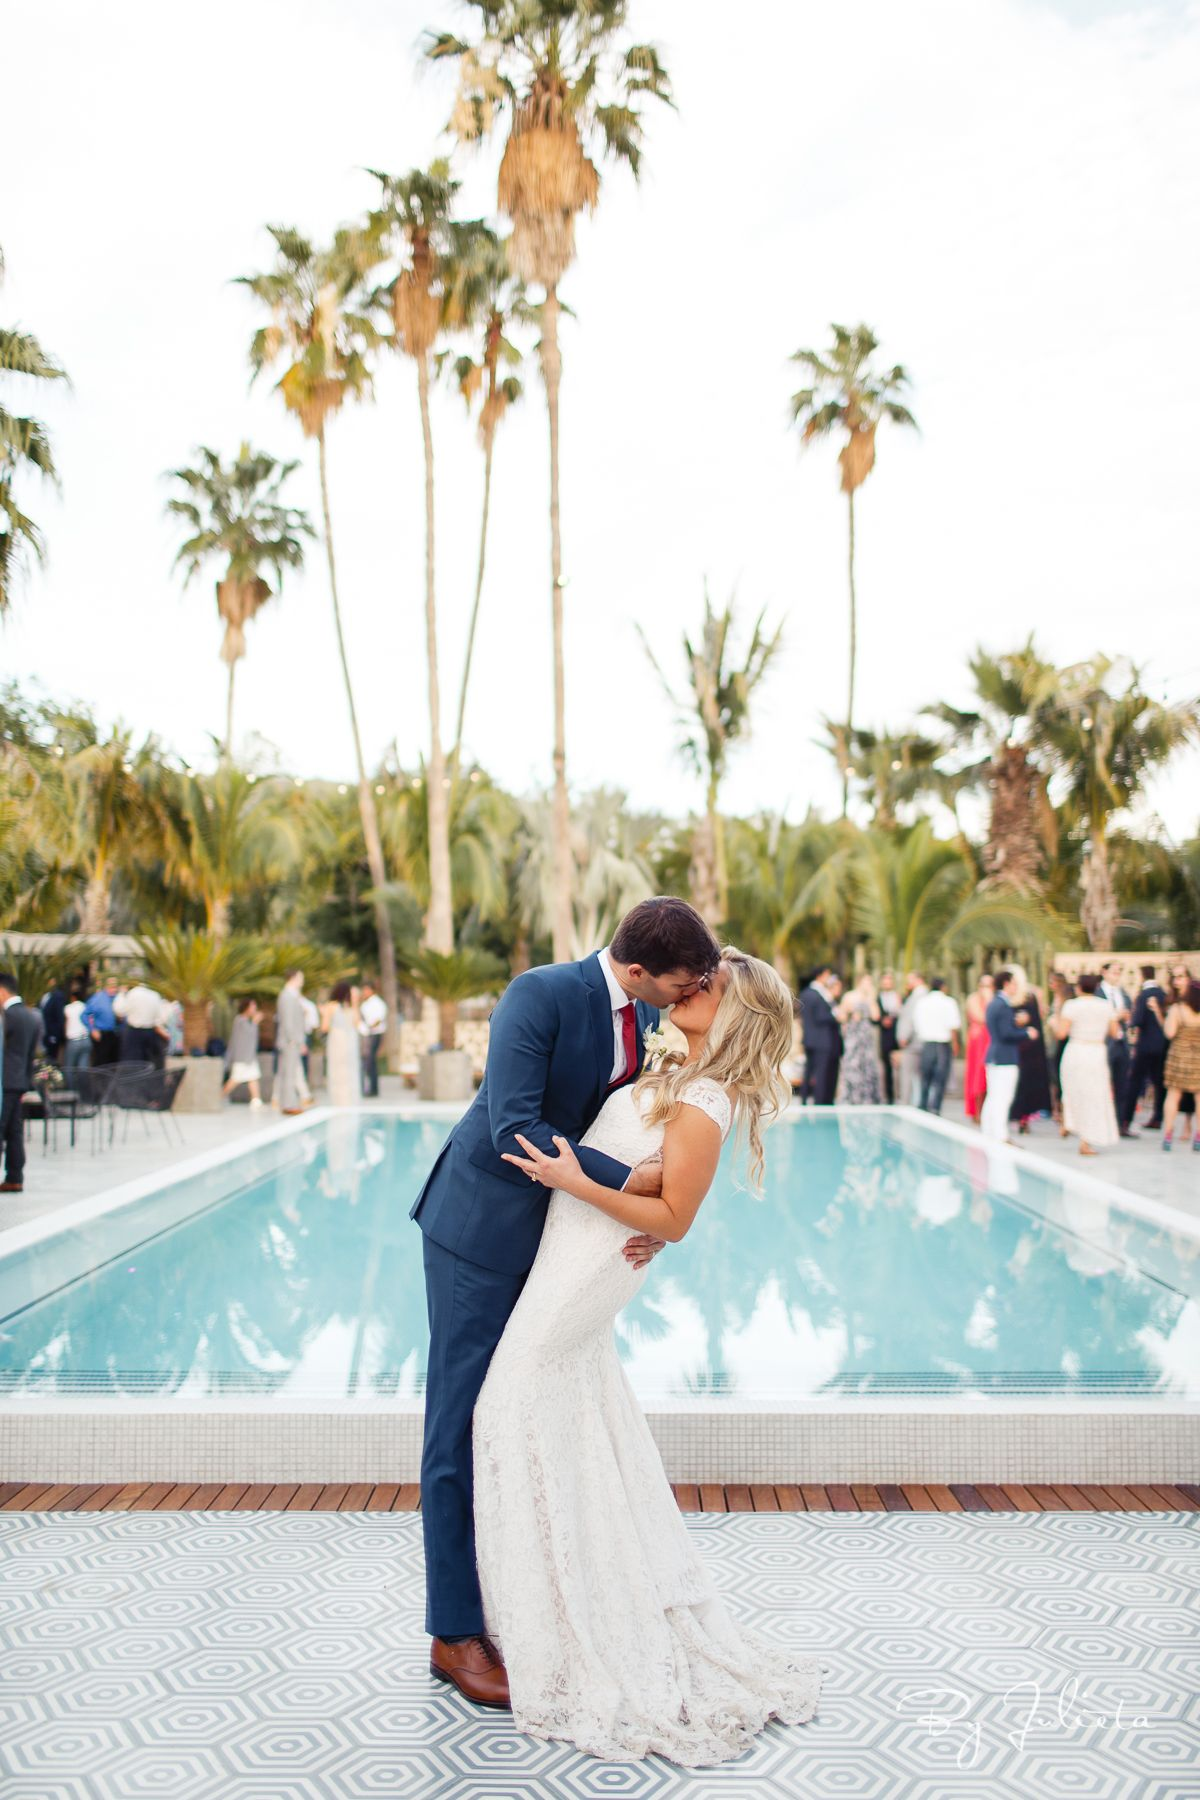 Destination Wedding at Acre Baja wedding by Cabo Wedding Services designed by Jesse Wolff